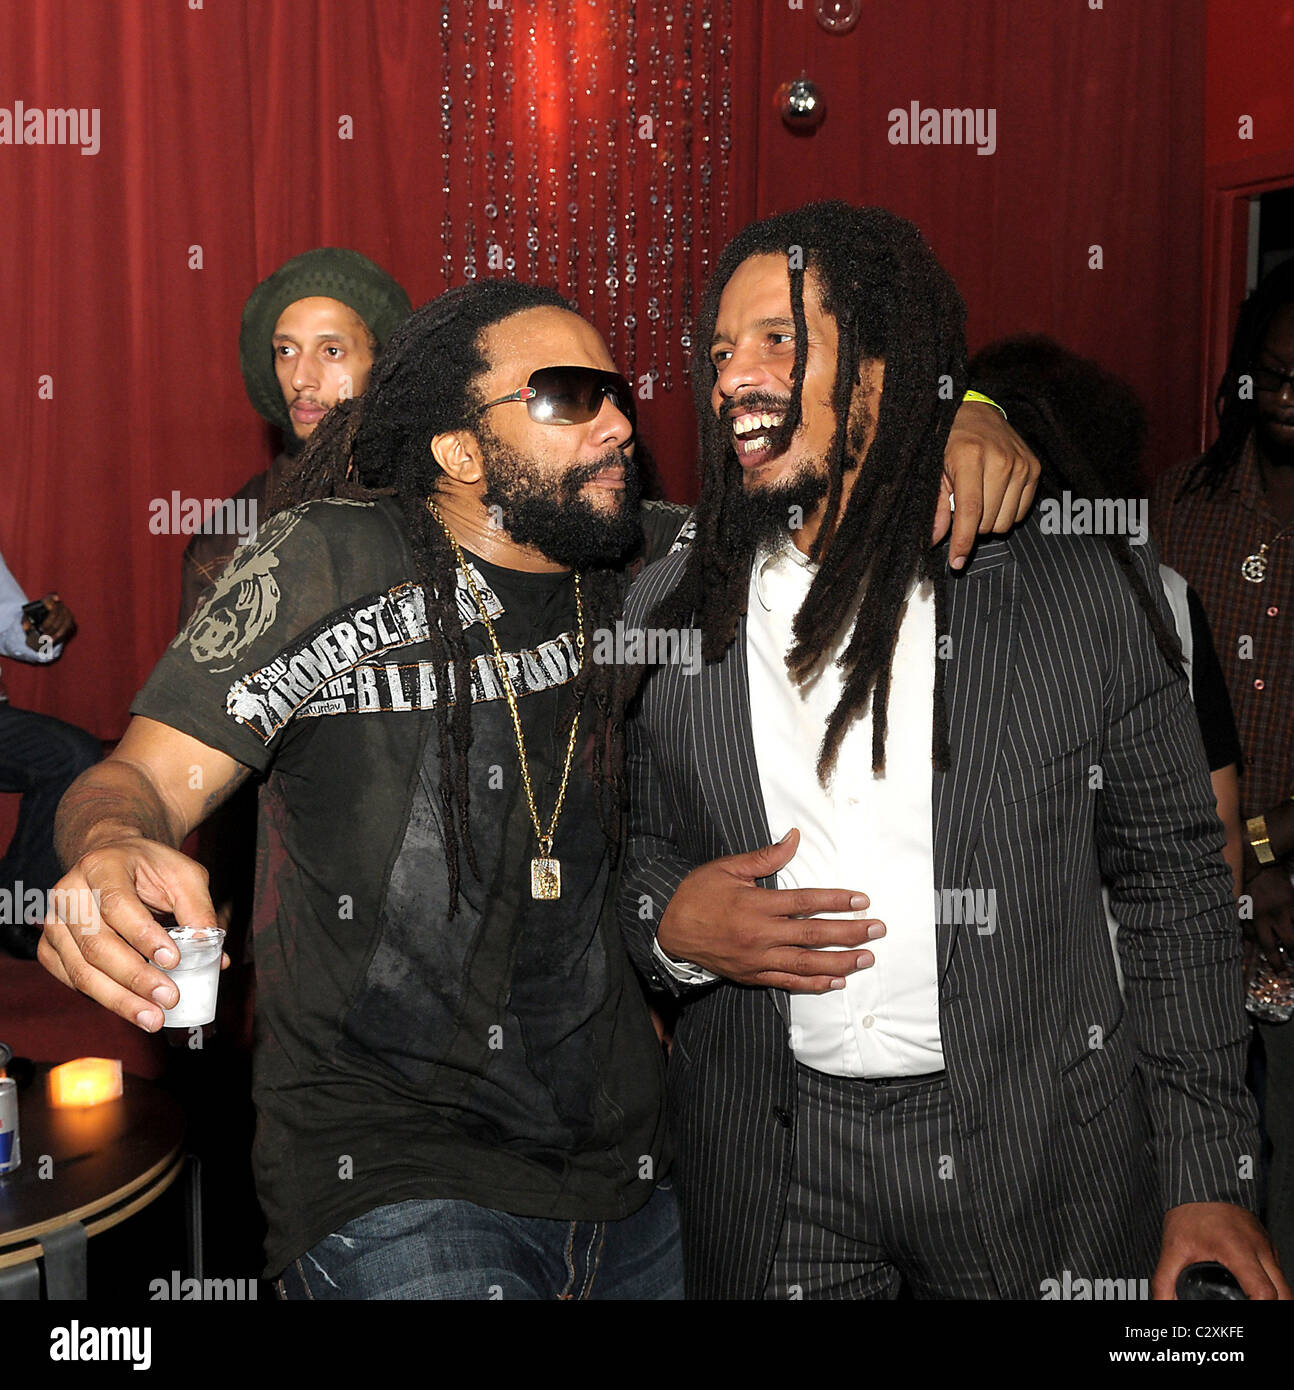 rohan marley and kymani marley at the launch of rohan